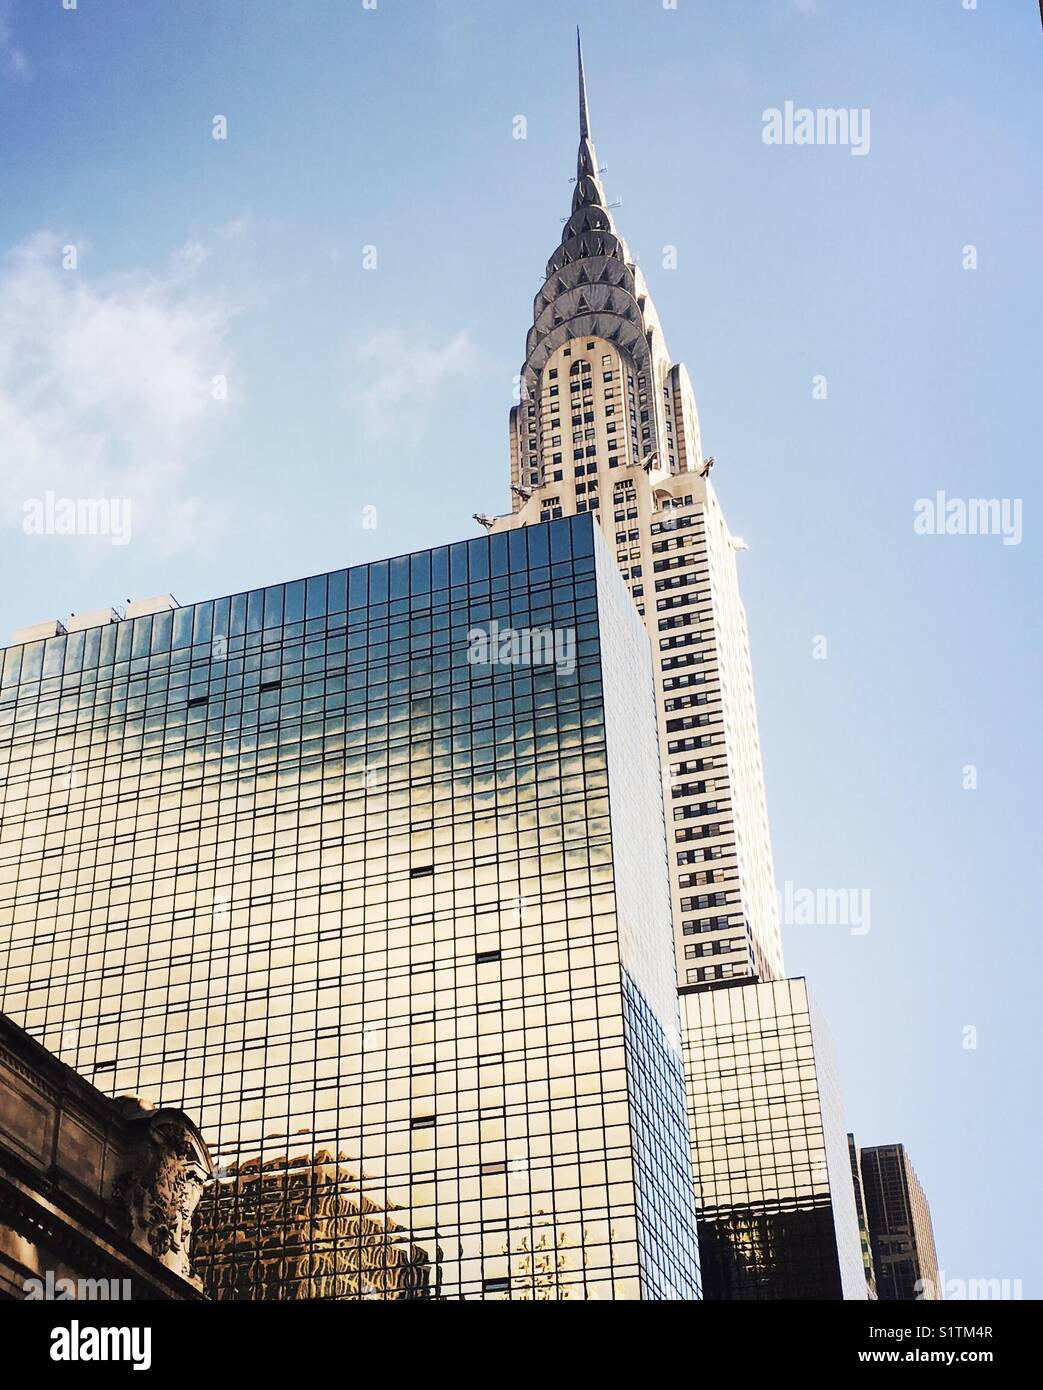 The Chrysler Building, New York City. - Stock Image